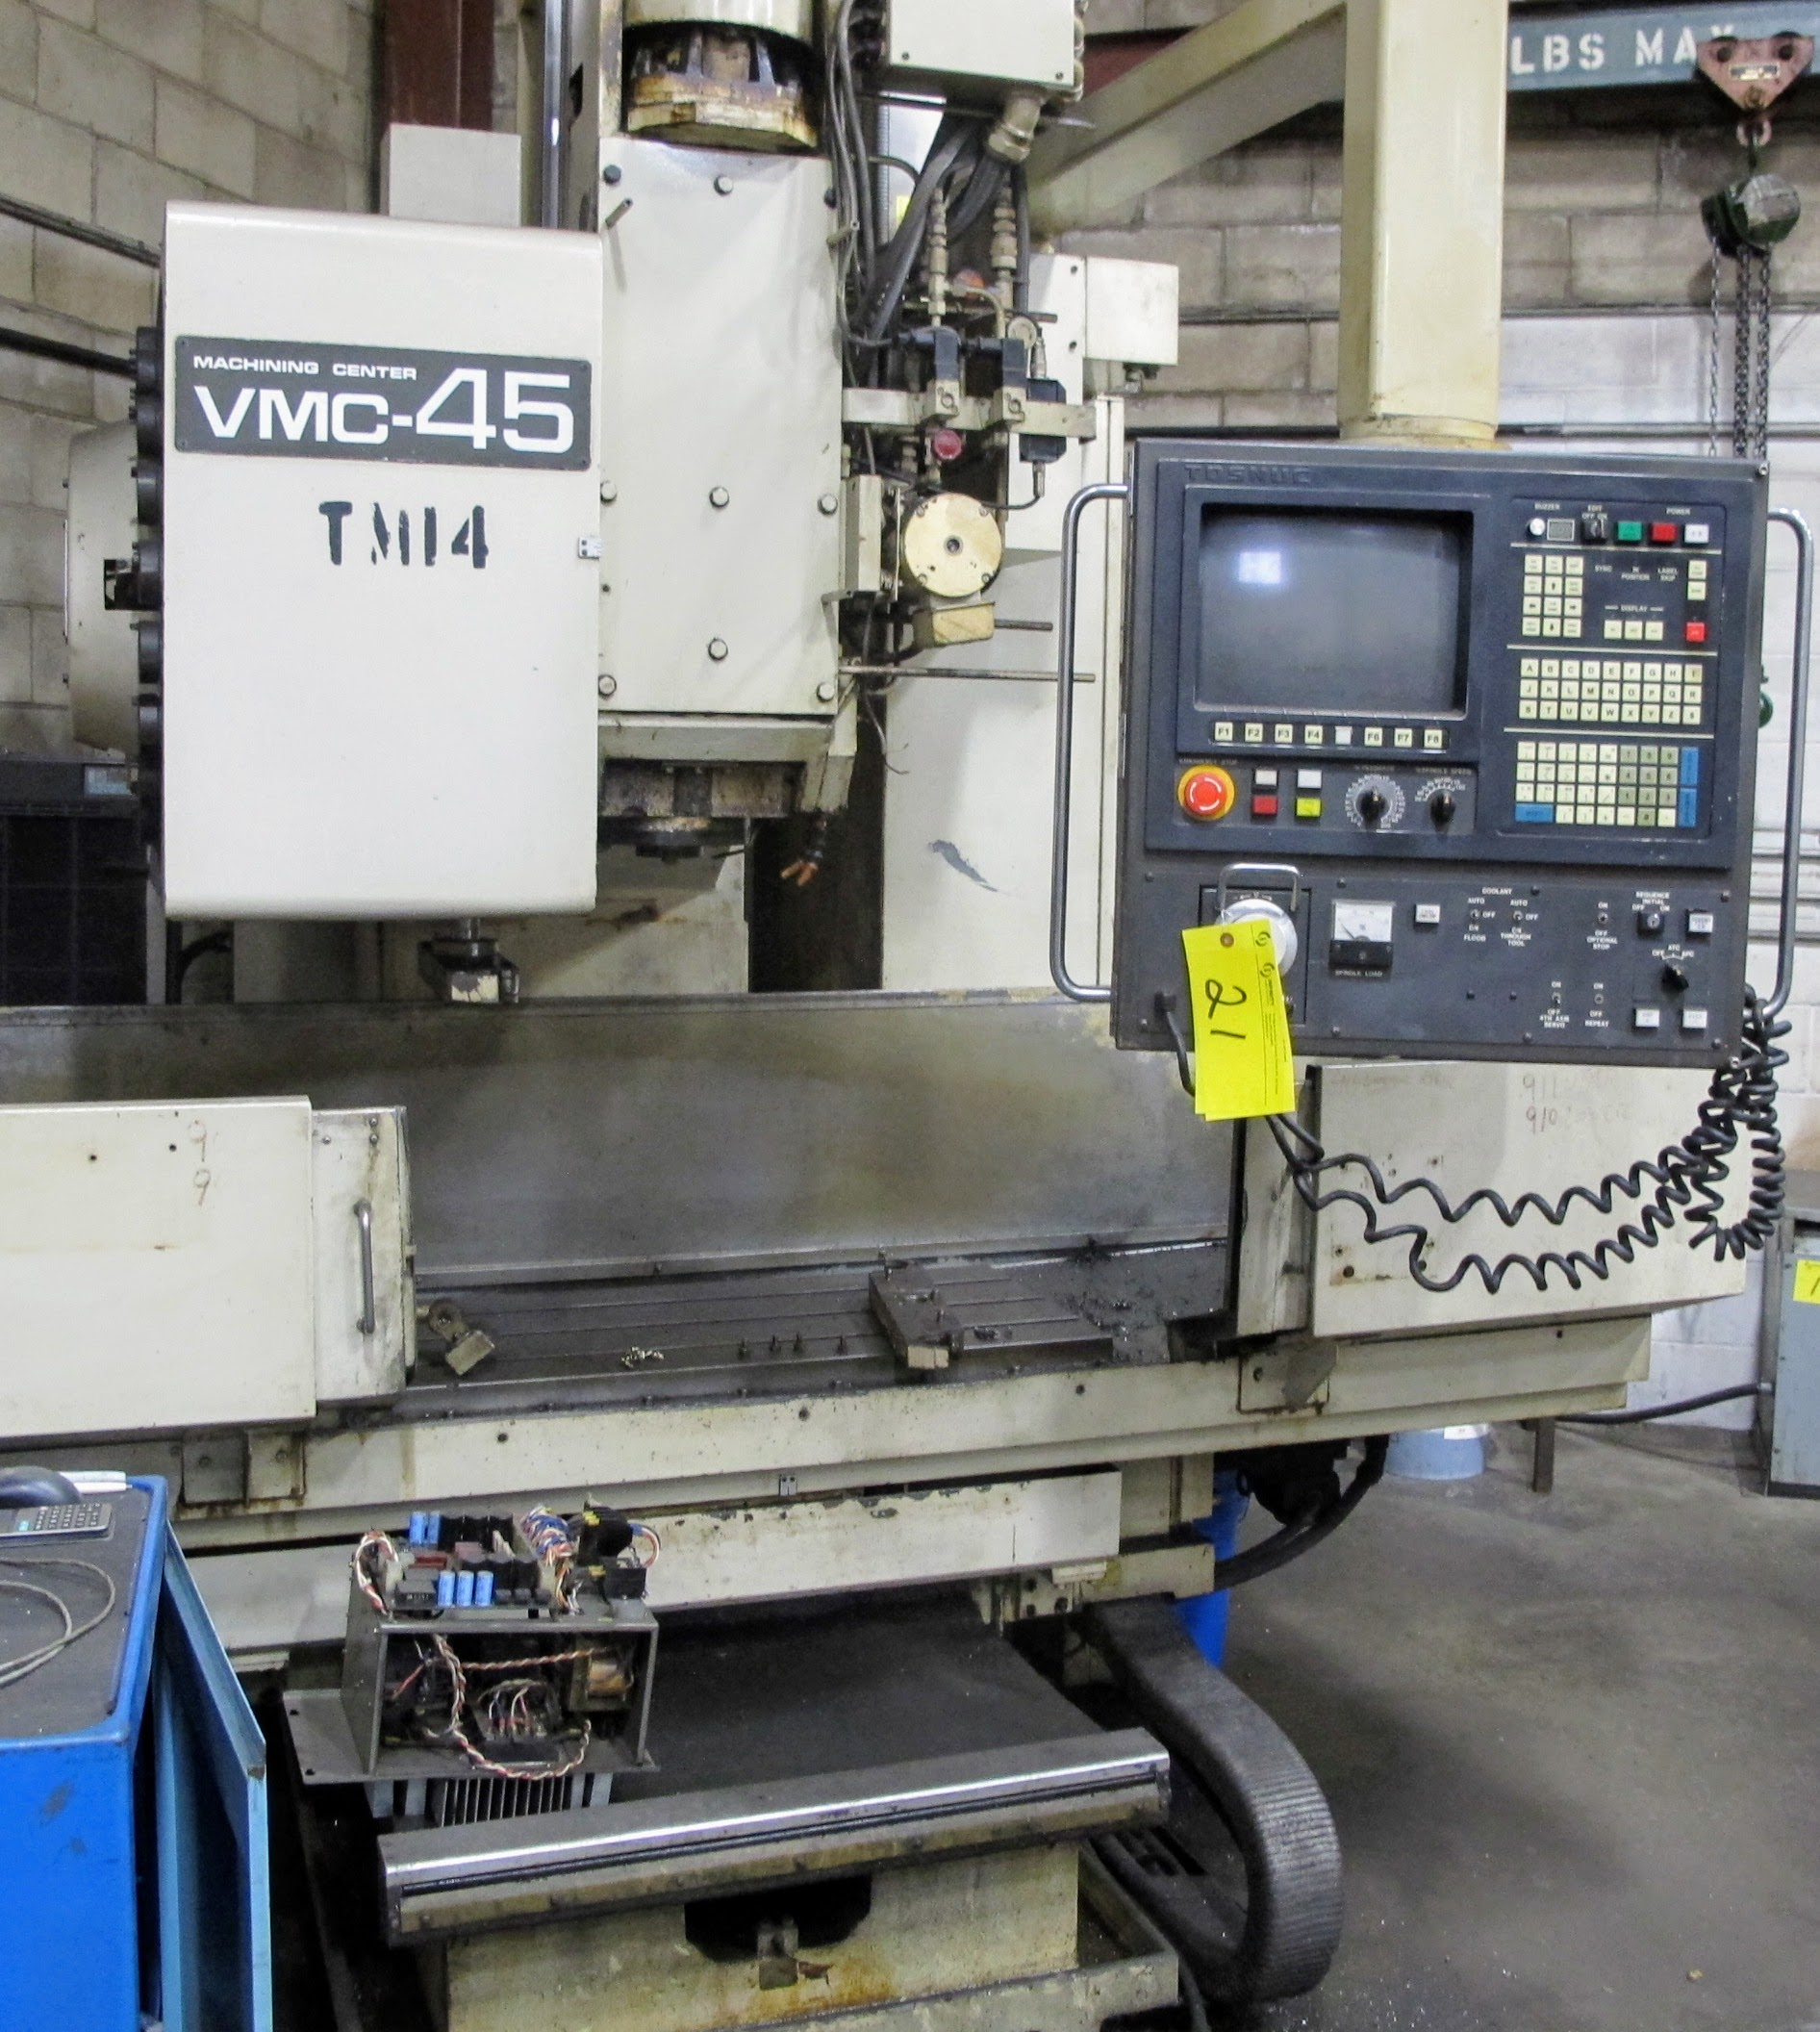 """SHIBAURA VMC-45 CNC VERTICAL MACHINING CENTER, 18"""" X 40"""" TABLE, TOSNUC CNC CONTROLS, 20 ATC, COOLING - Image 6 of 6"""